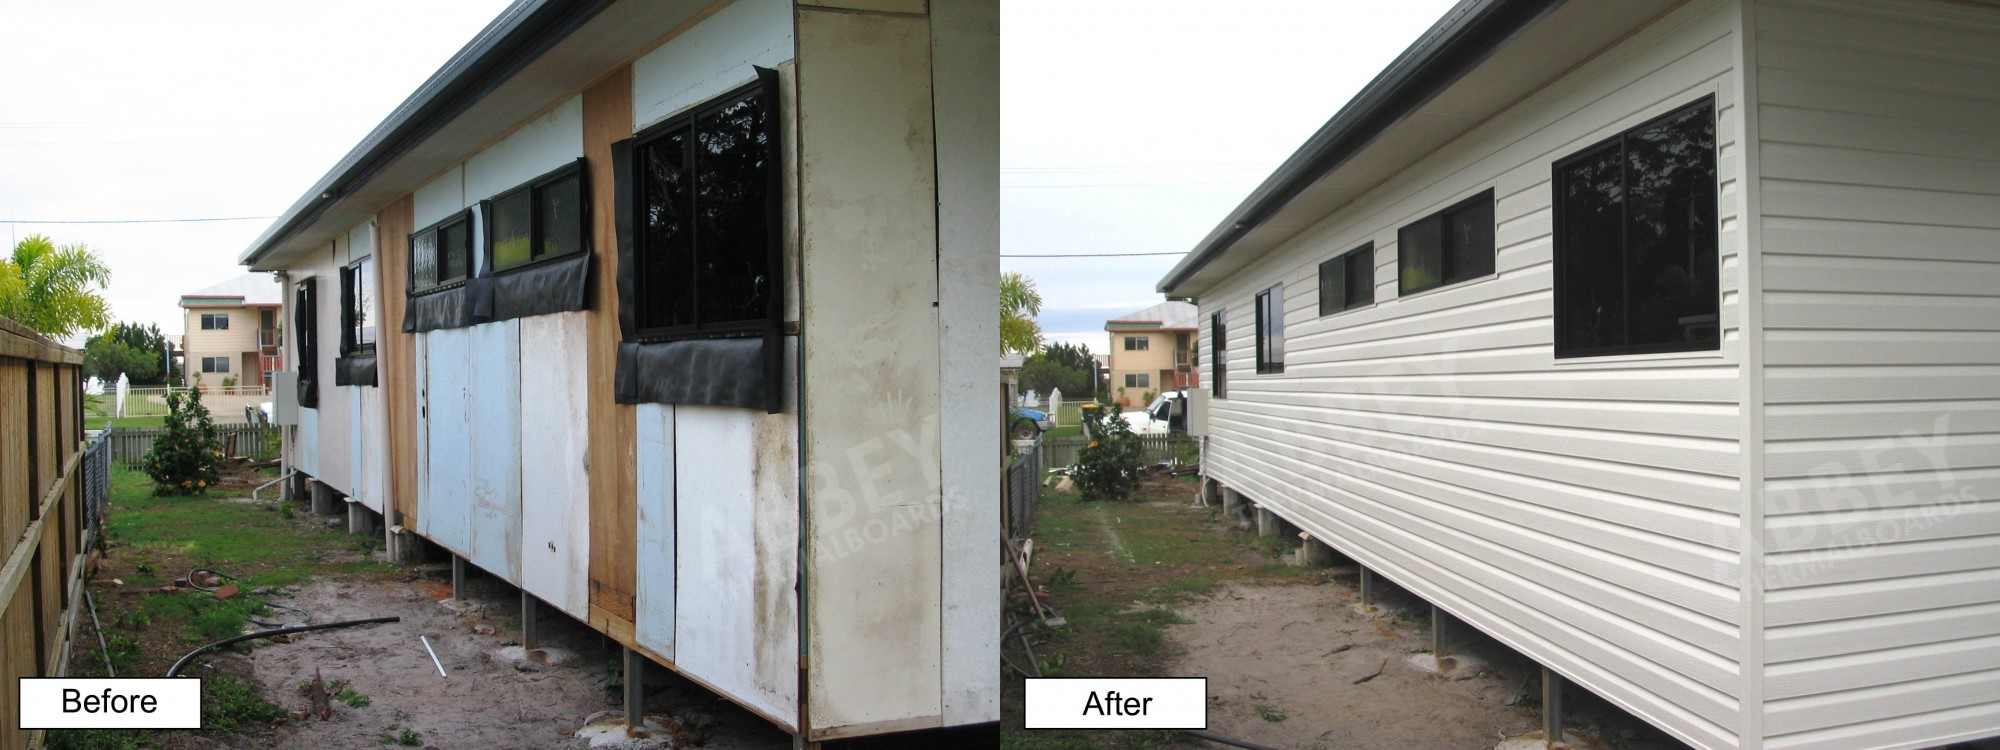 The before and after pictures of new house cladding completed.